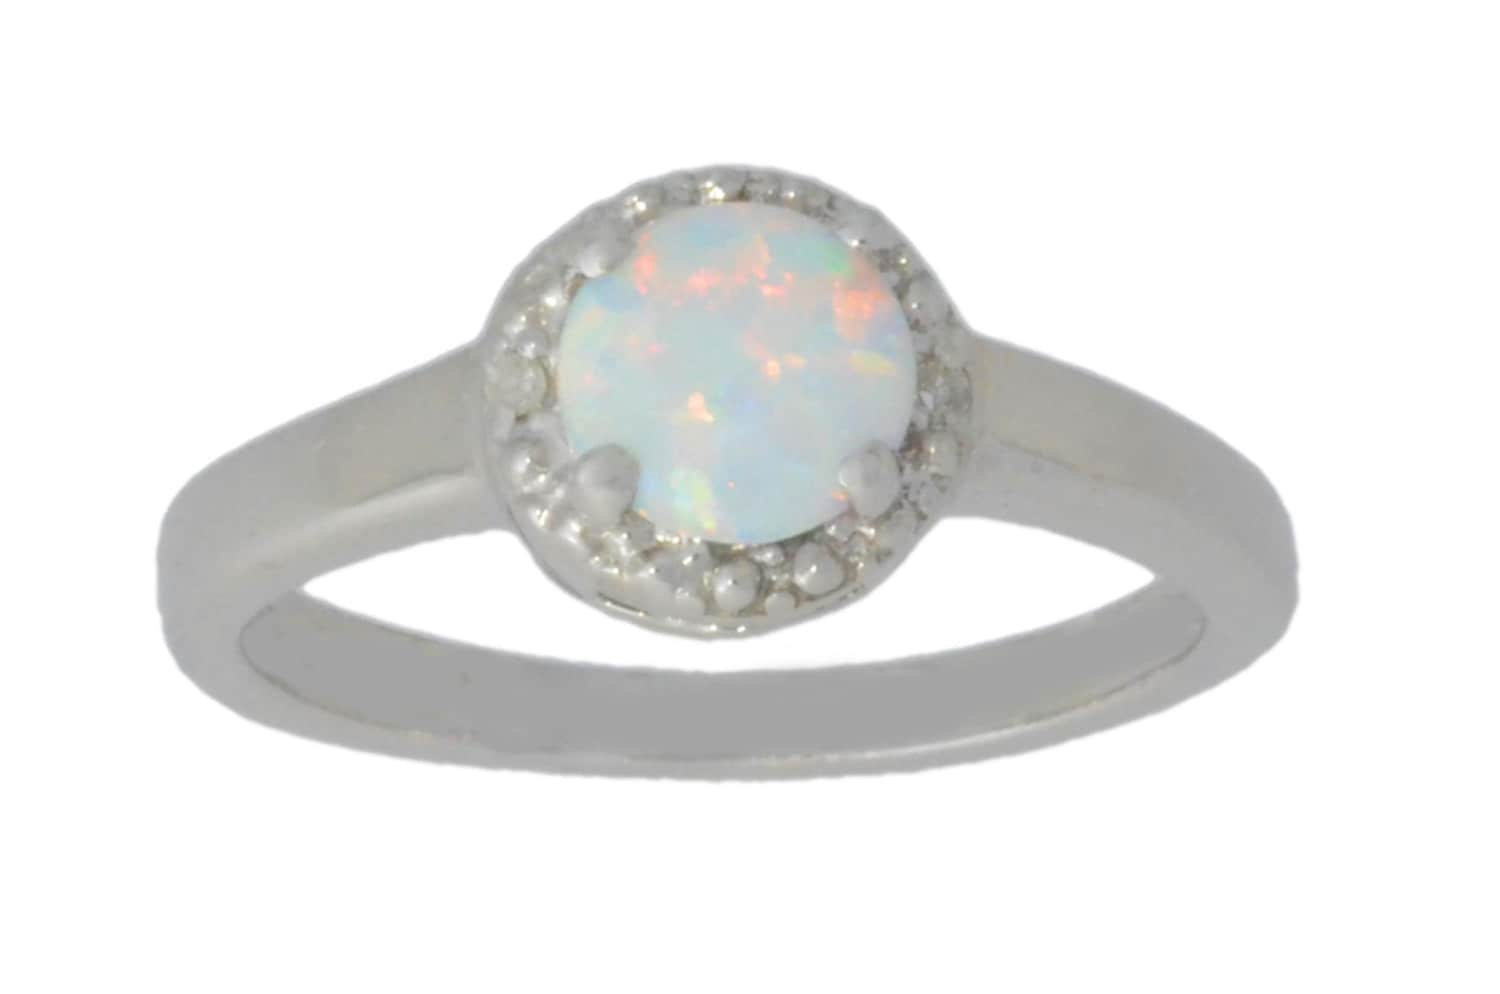 c18473d59603a Opal & Diamond Round Ring .925 Sterling Silver Dainty Gift For Her Jewelry  Fashion Trend